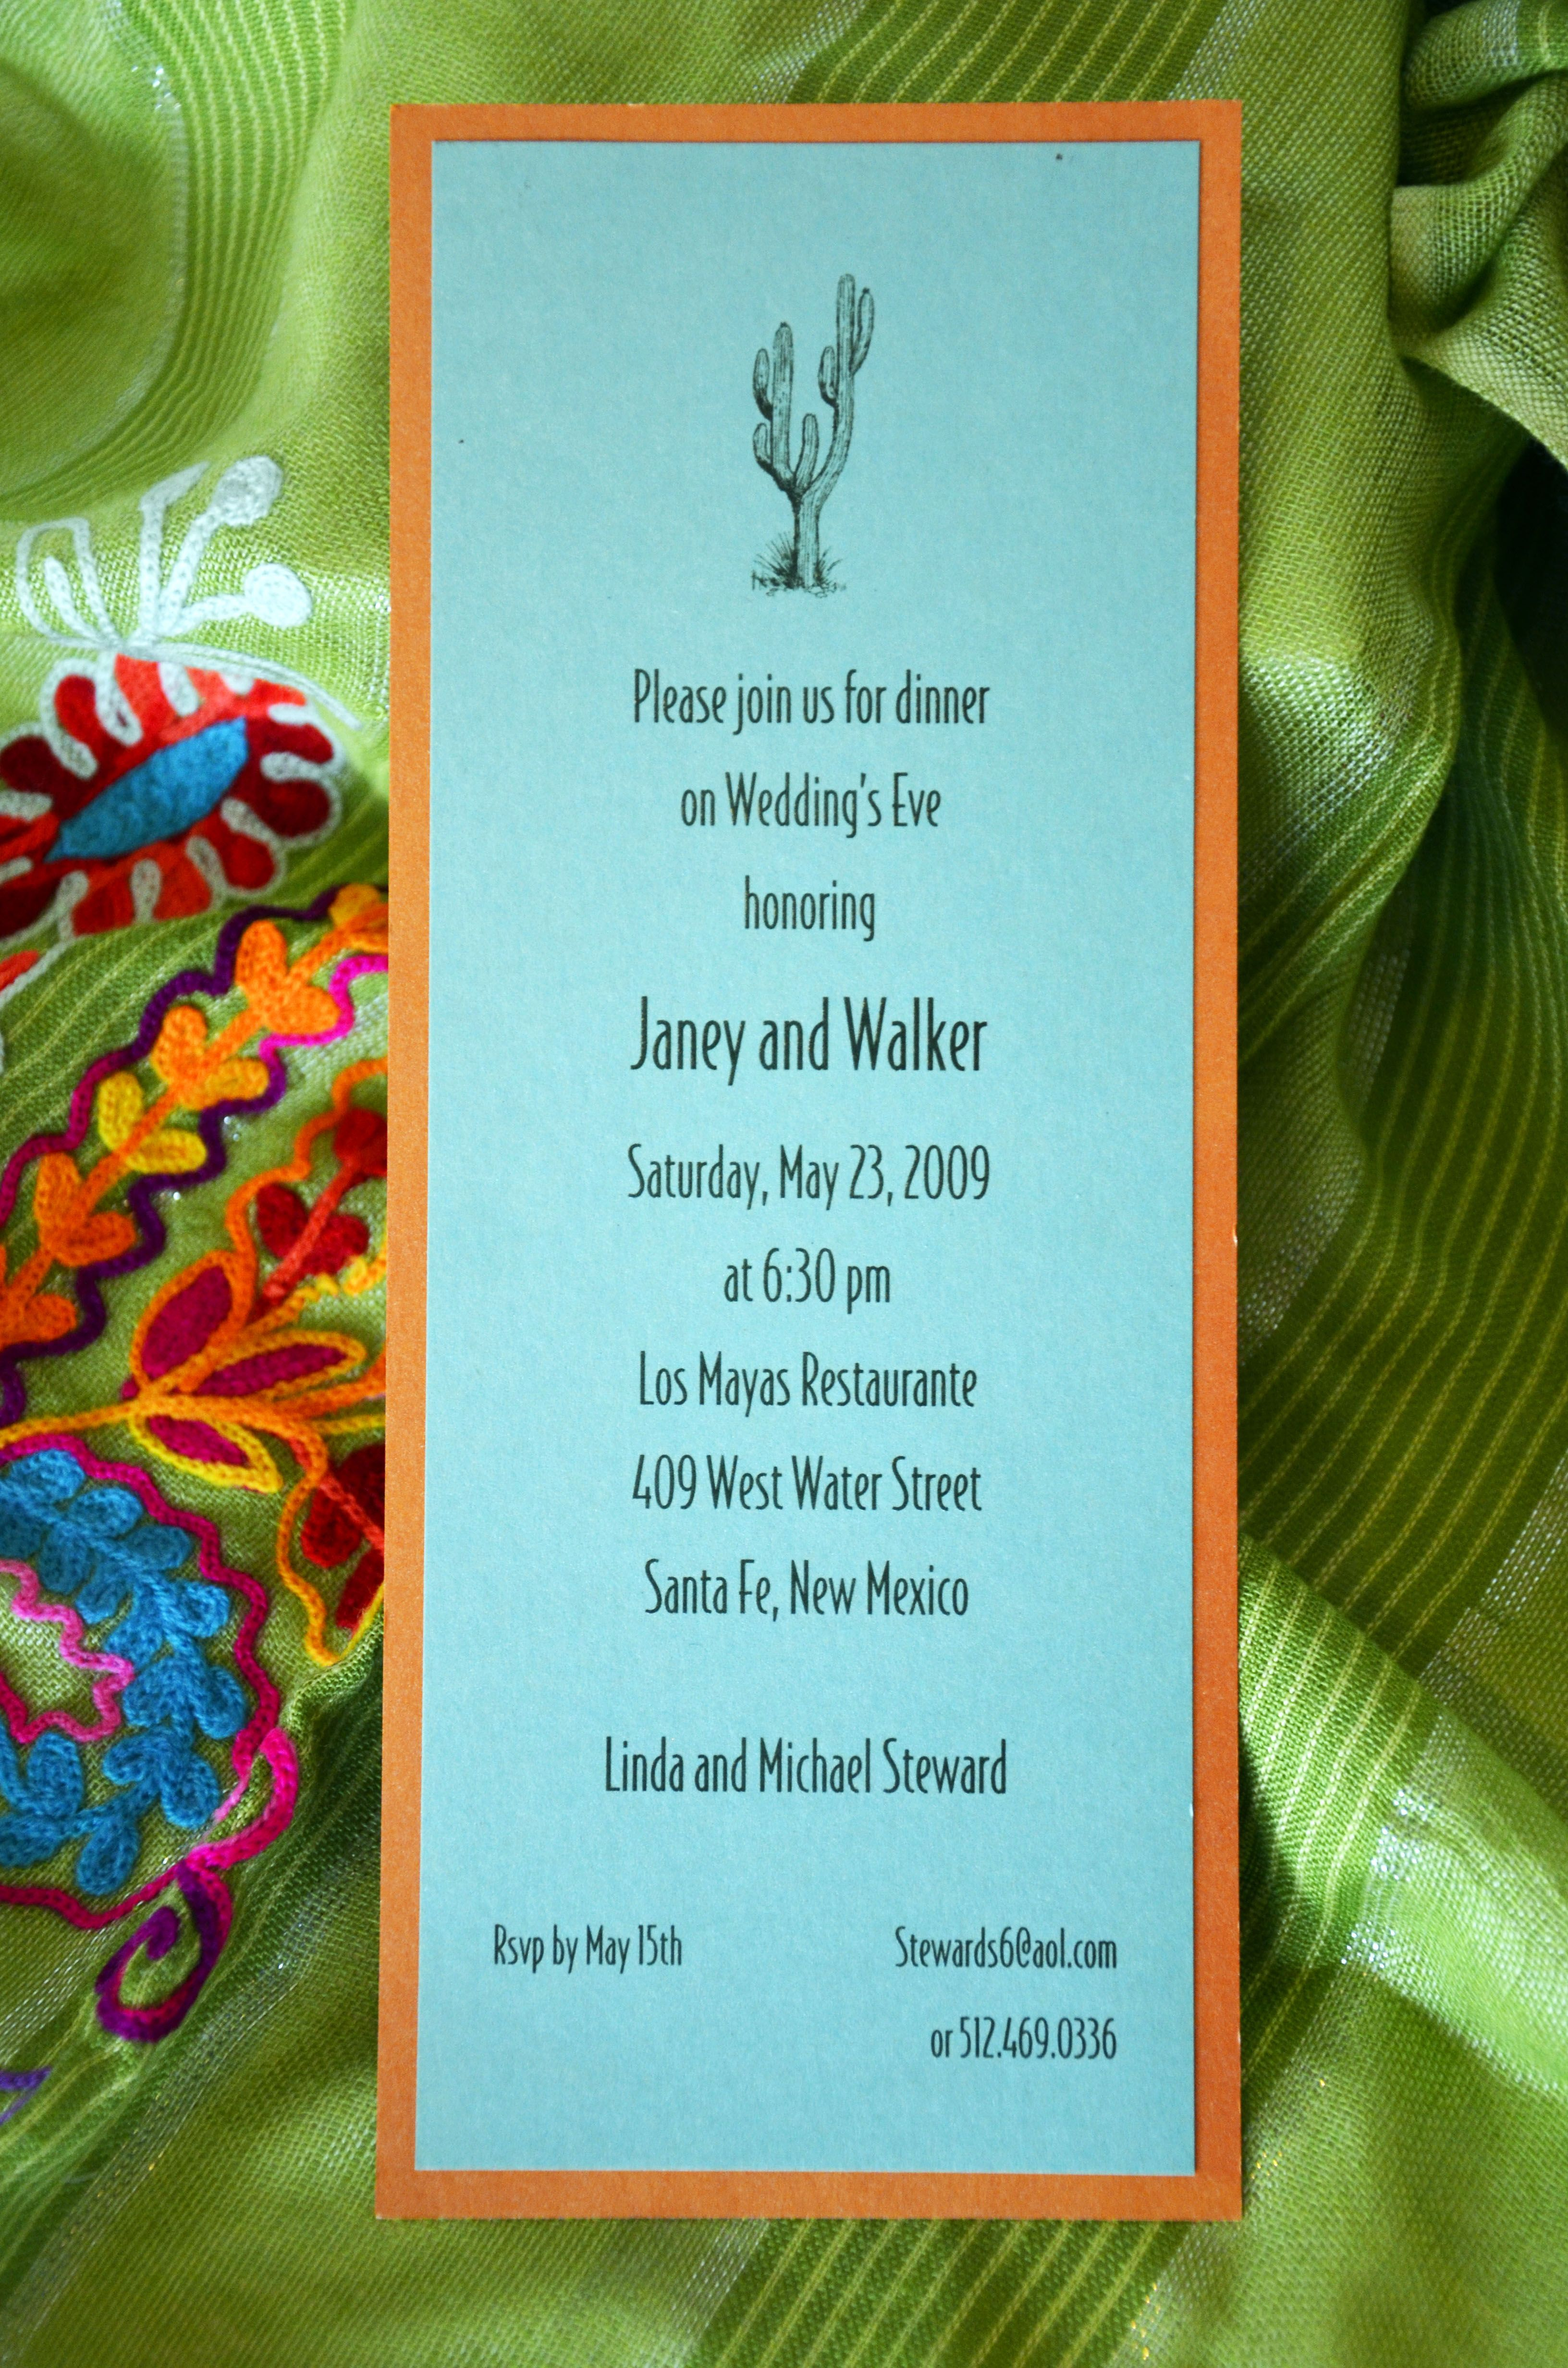 An invitation to the Rehearsal Dinner can be a complete departure from the style of the wedding invitation. Here, Janey and Walker wanted to keep the Santa Fe style in a contemporary and striking presentation. This rehearsal dinner invitation put the guests on notice that they would be having a colorful and fun evening with Santa Fe flair. The papers were layered to match their wedding colors but can be ordered in any combination with different artwork.